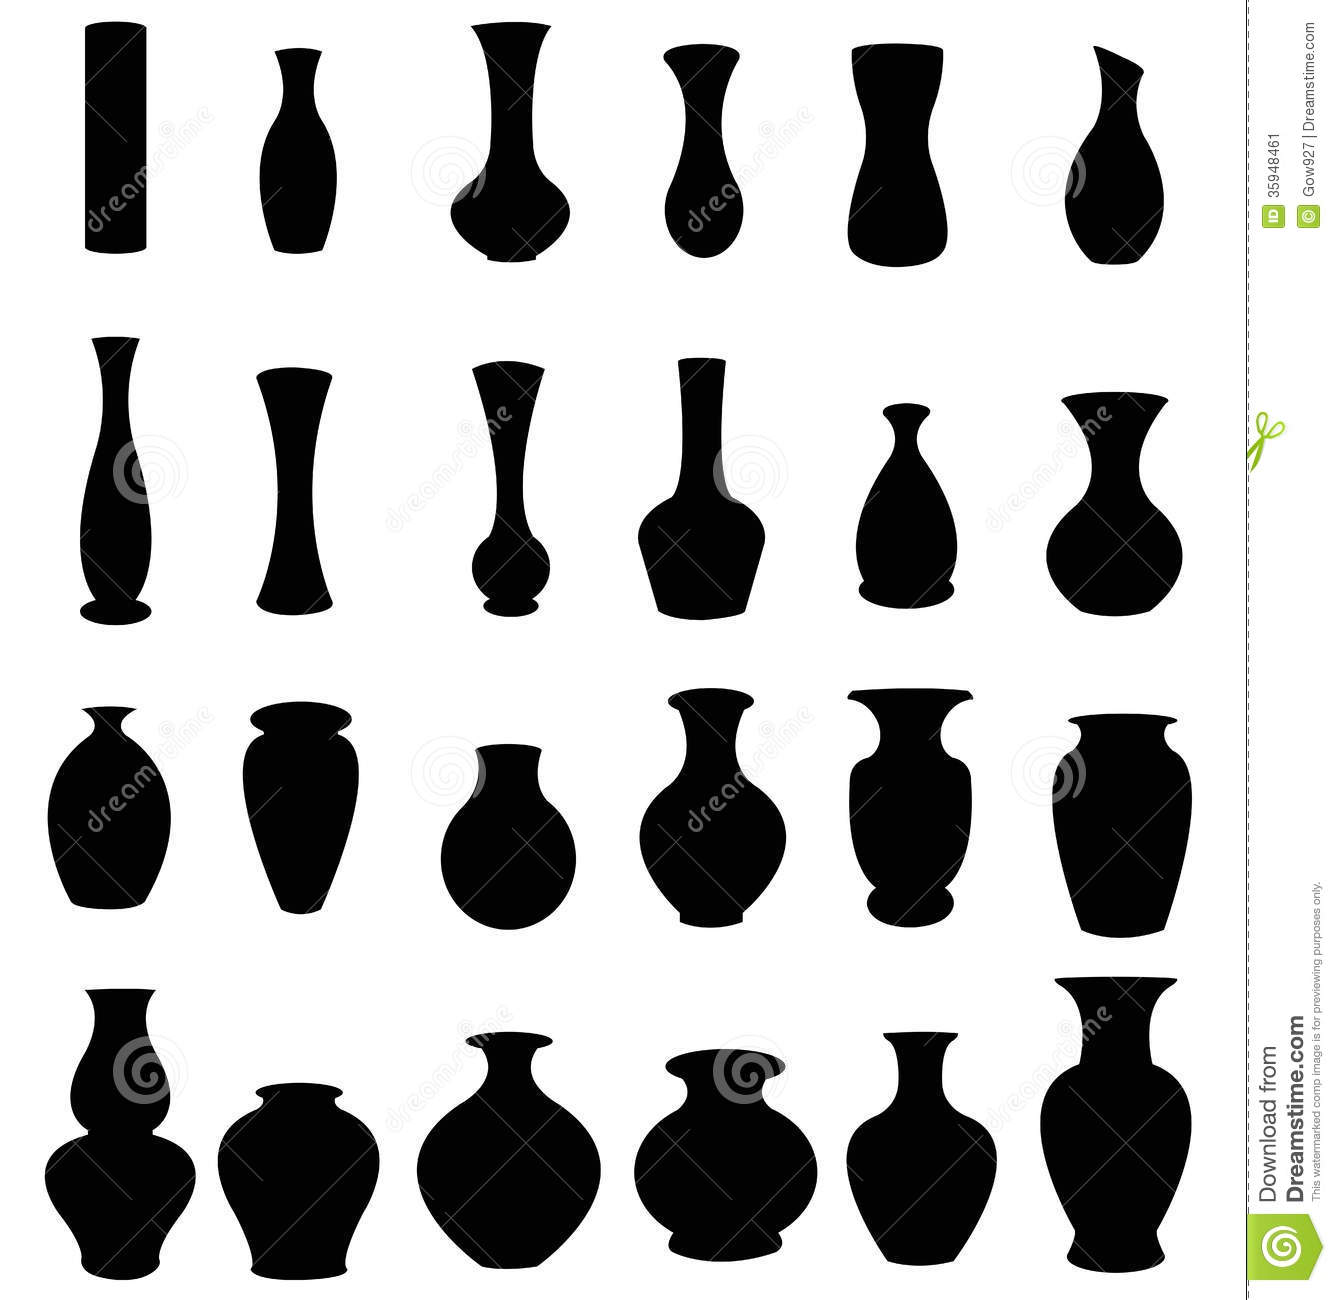 Set Of Silhouette Vases And Bottles Icon Stock Image ...